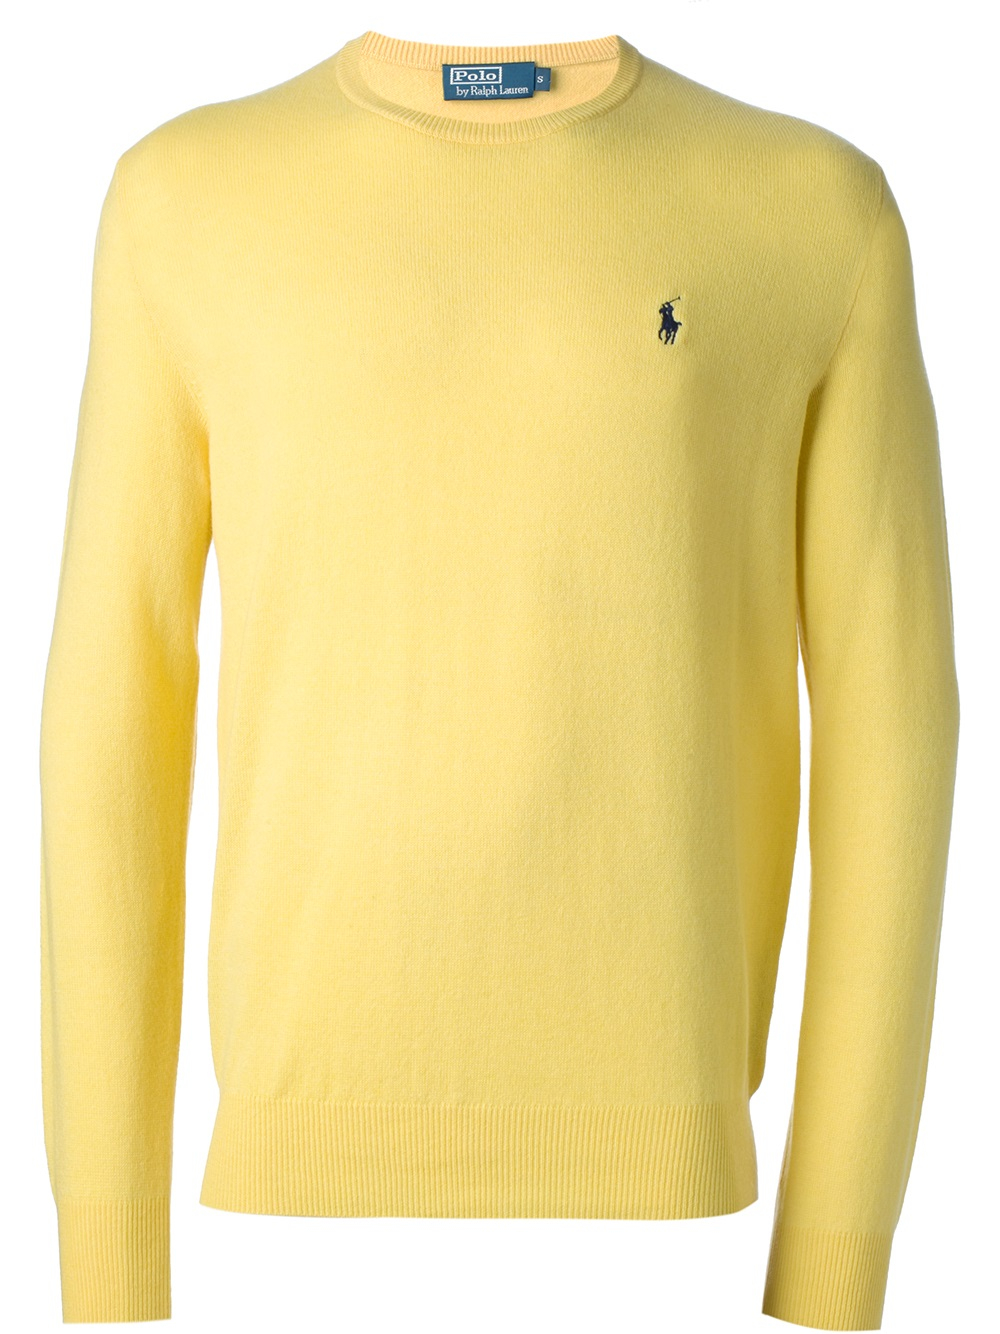 Lyst Polo Ralph Lauren Crew Neck Sweater In Yellow For Men